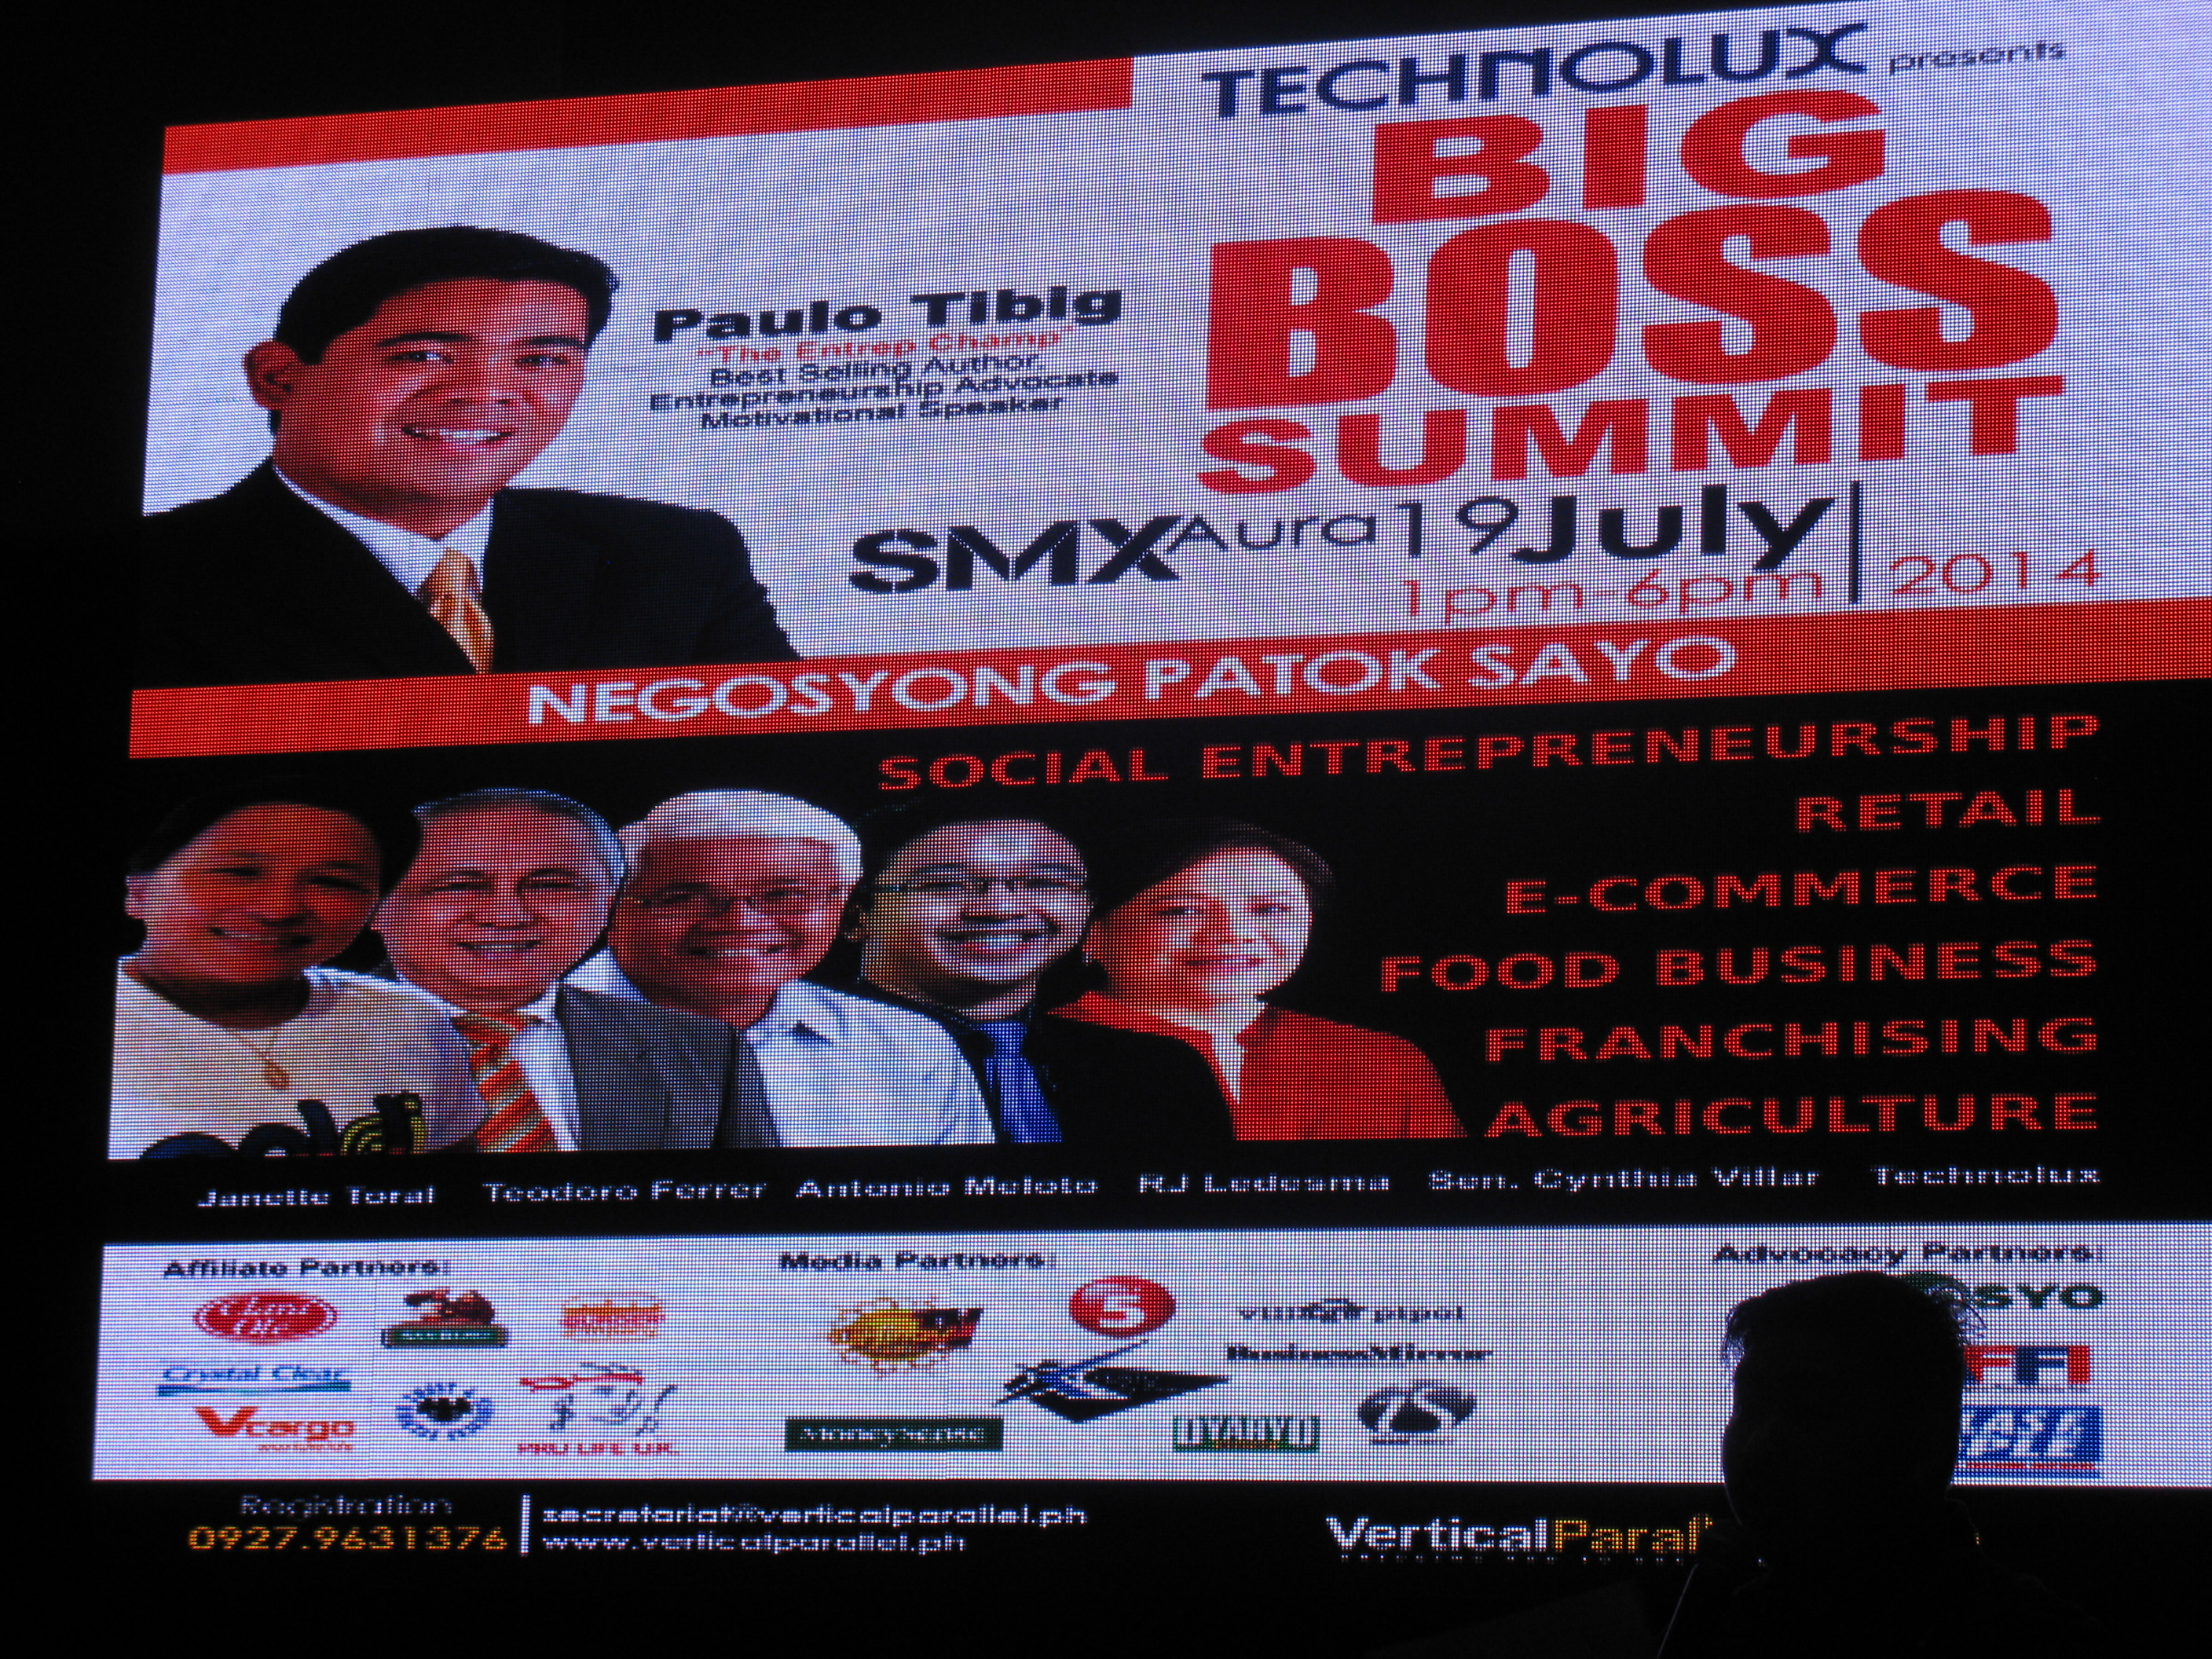 Big Boss Summit 2014 offers more business ideas to entrepreneurs